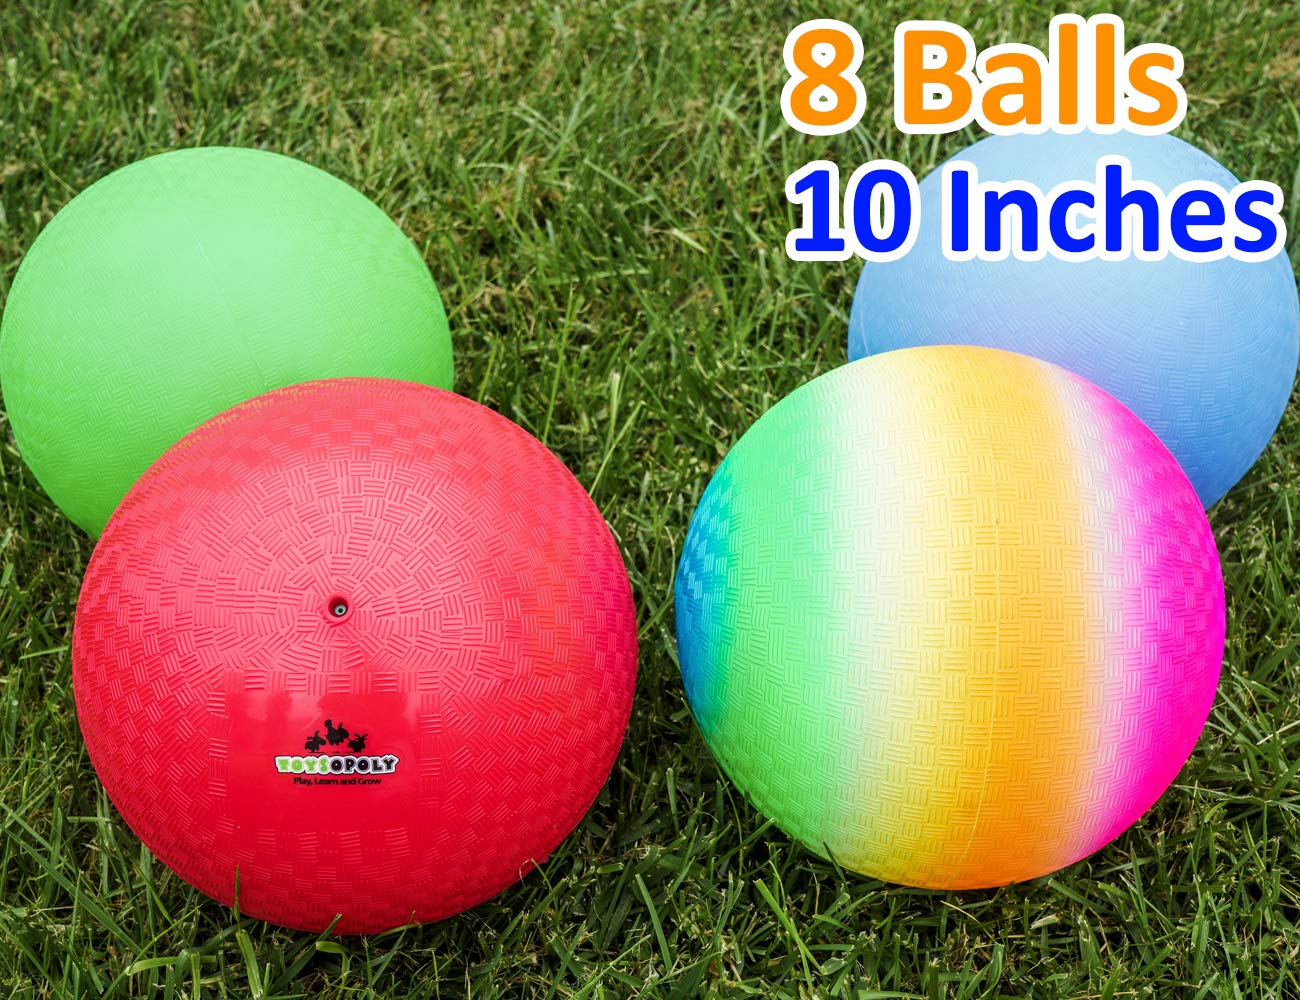 Playground Balls 10 inch Dodgeball (Set of 8) Kickball for Boys Girls Kids Adults - Official Size Bouncy Dodge Ball, Handball, Four Square Picnic School + Free Pump